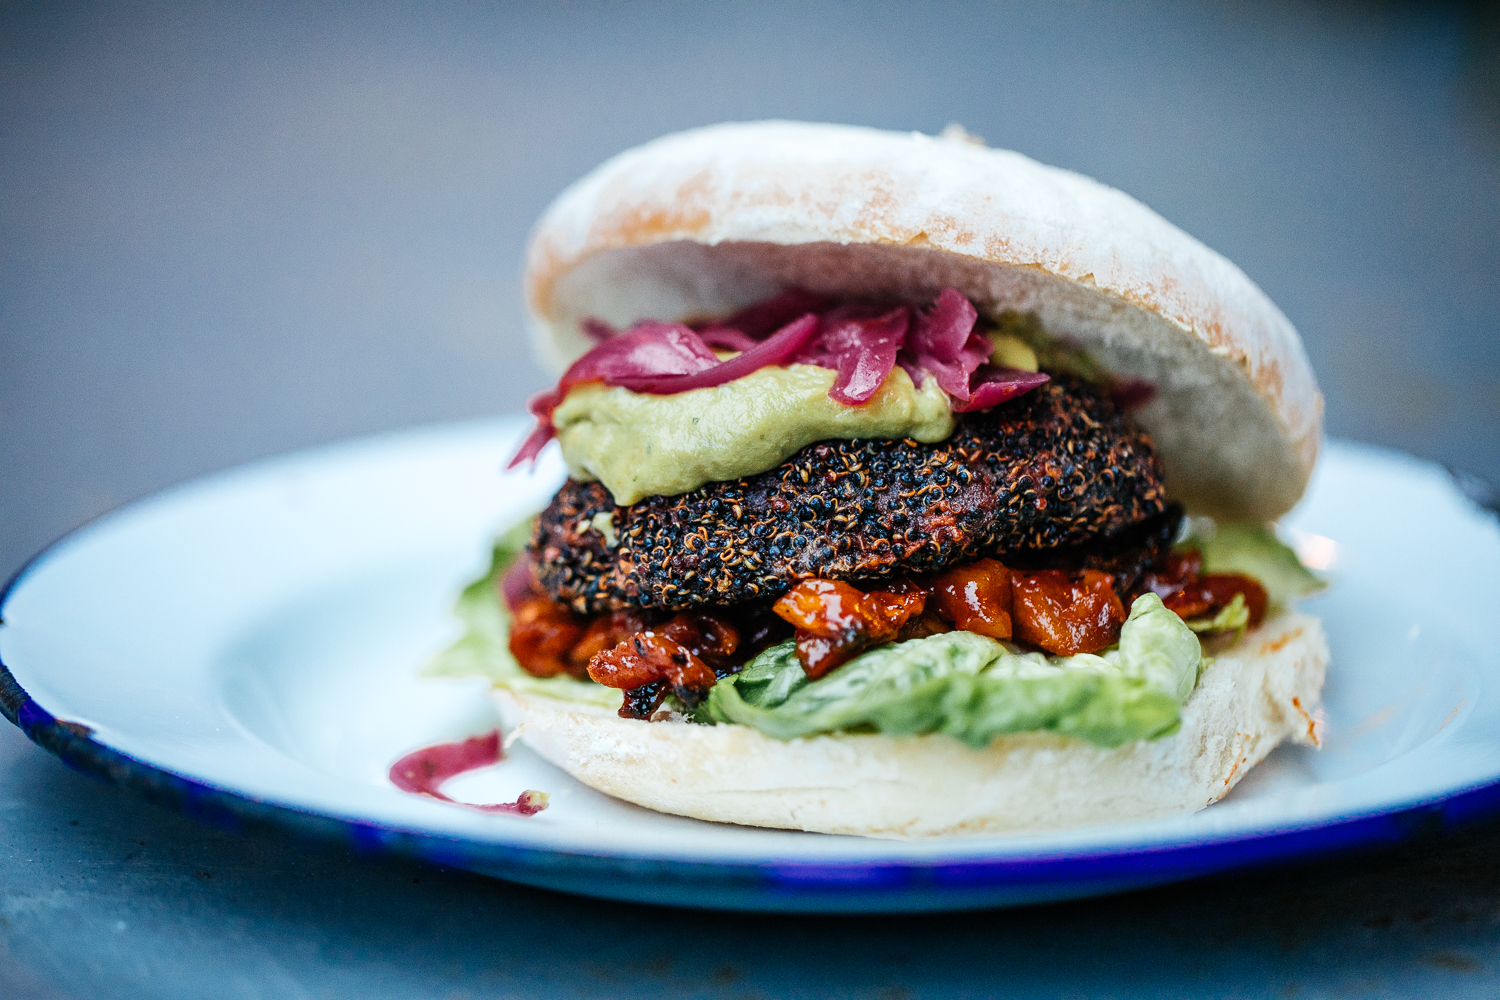 BEETROOT & BLACKBEAN    Beetroot black bean patty, black quinoa seed coating, sriracha + pineapple salsa, lime infused red onion, lettuce, guacamole, ketchup